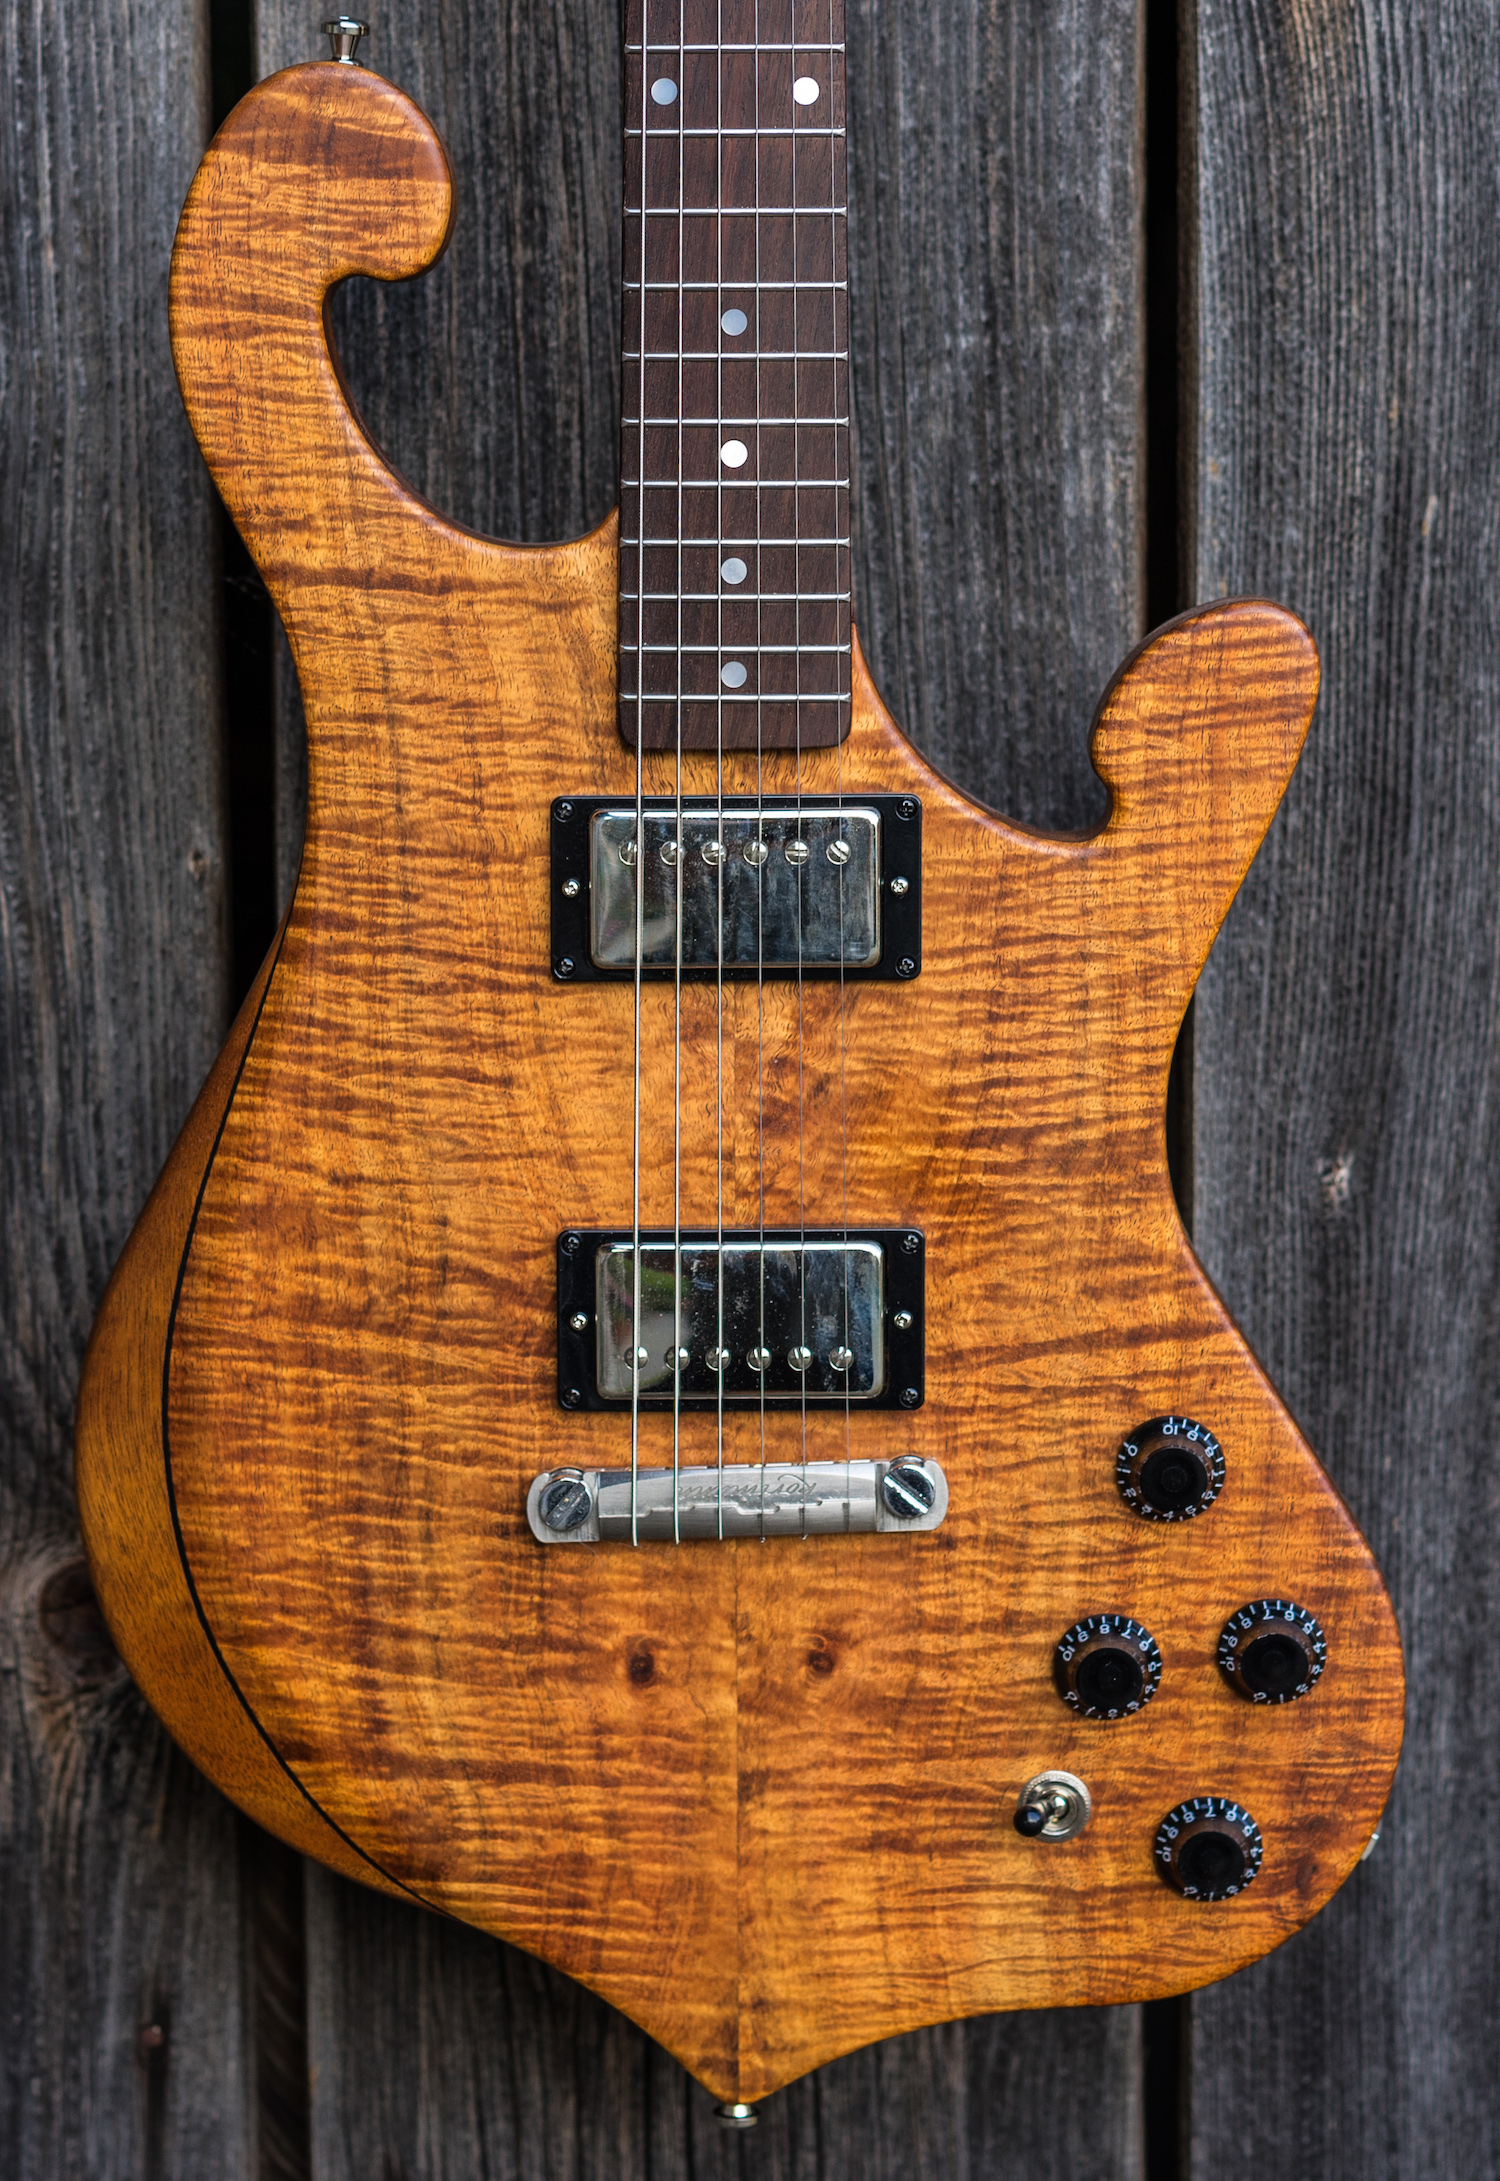 Hot Wire Guitars - On Special Request